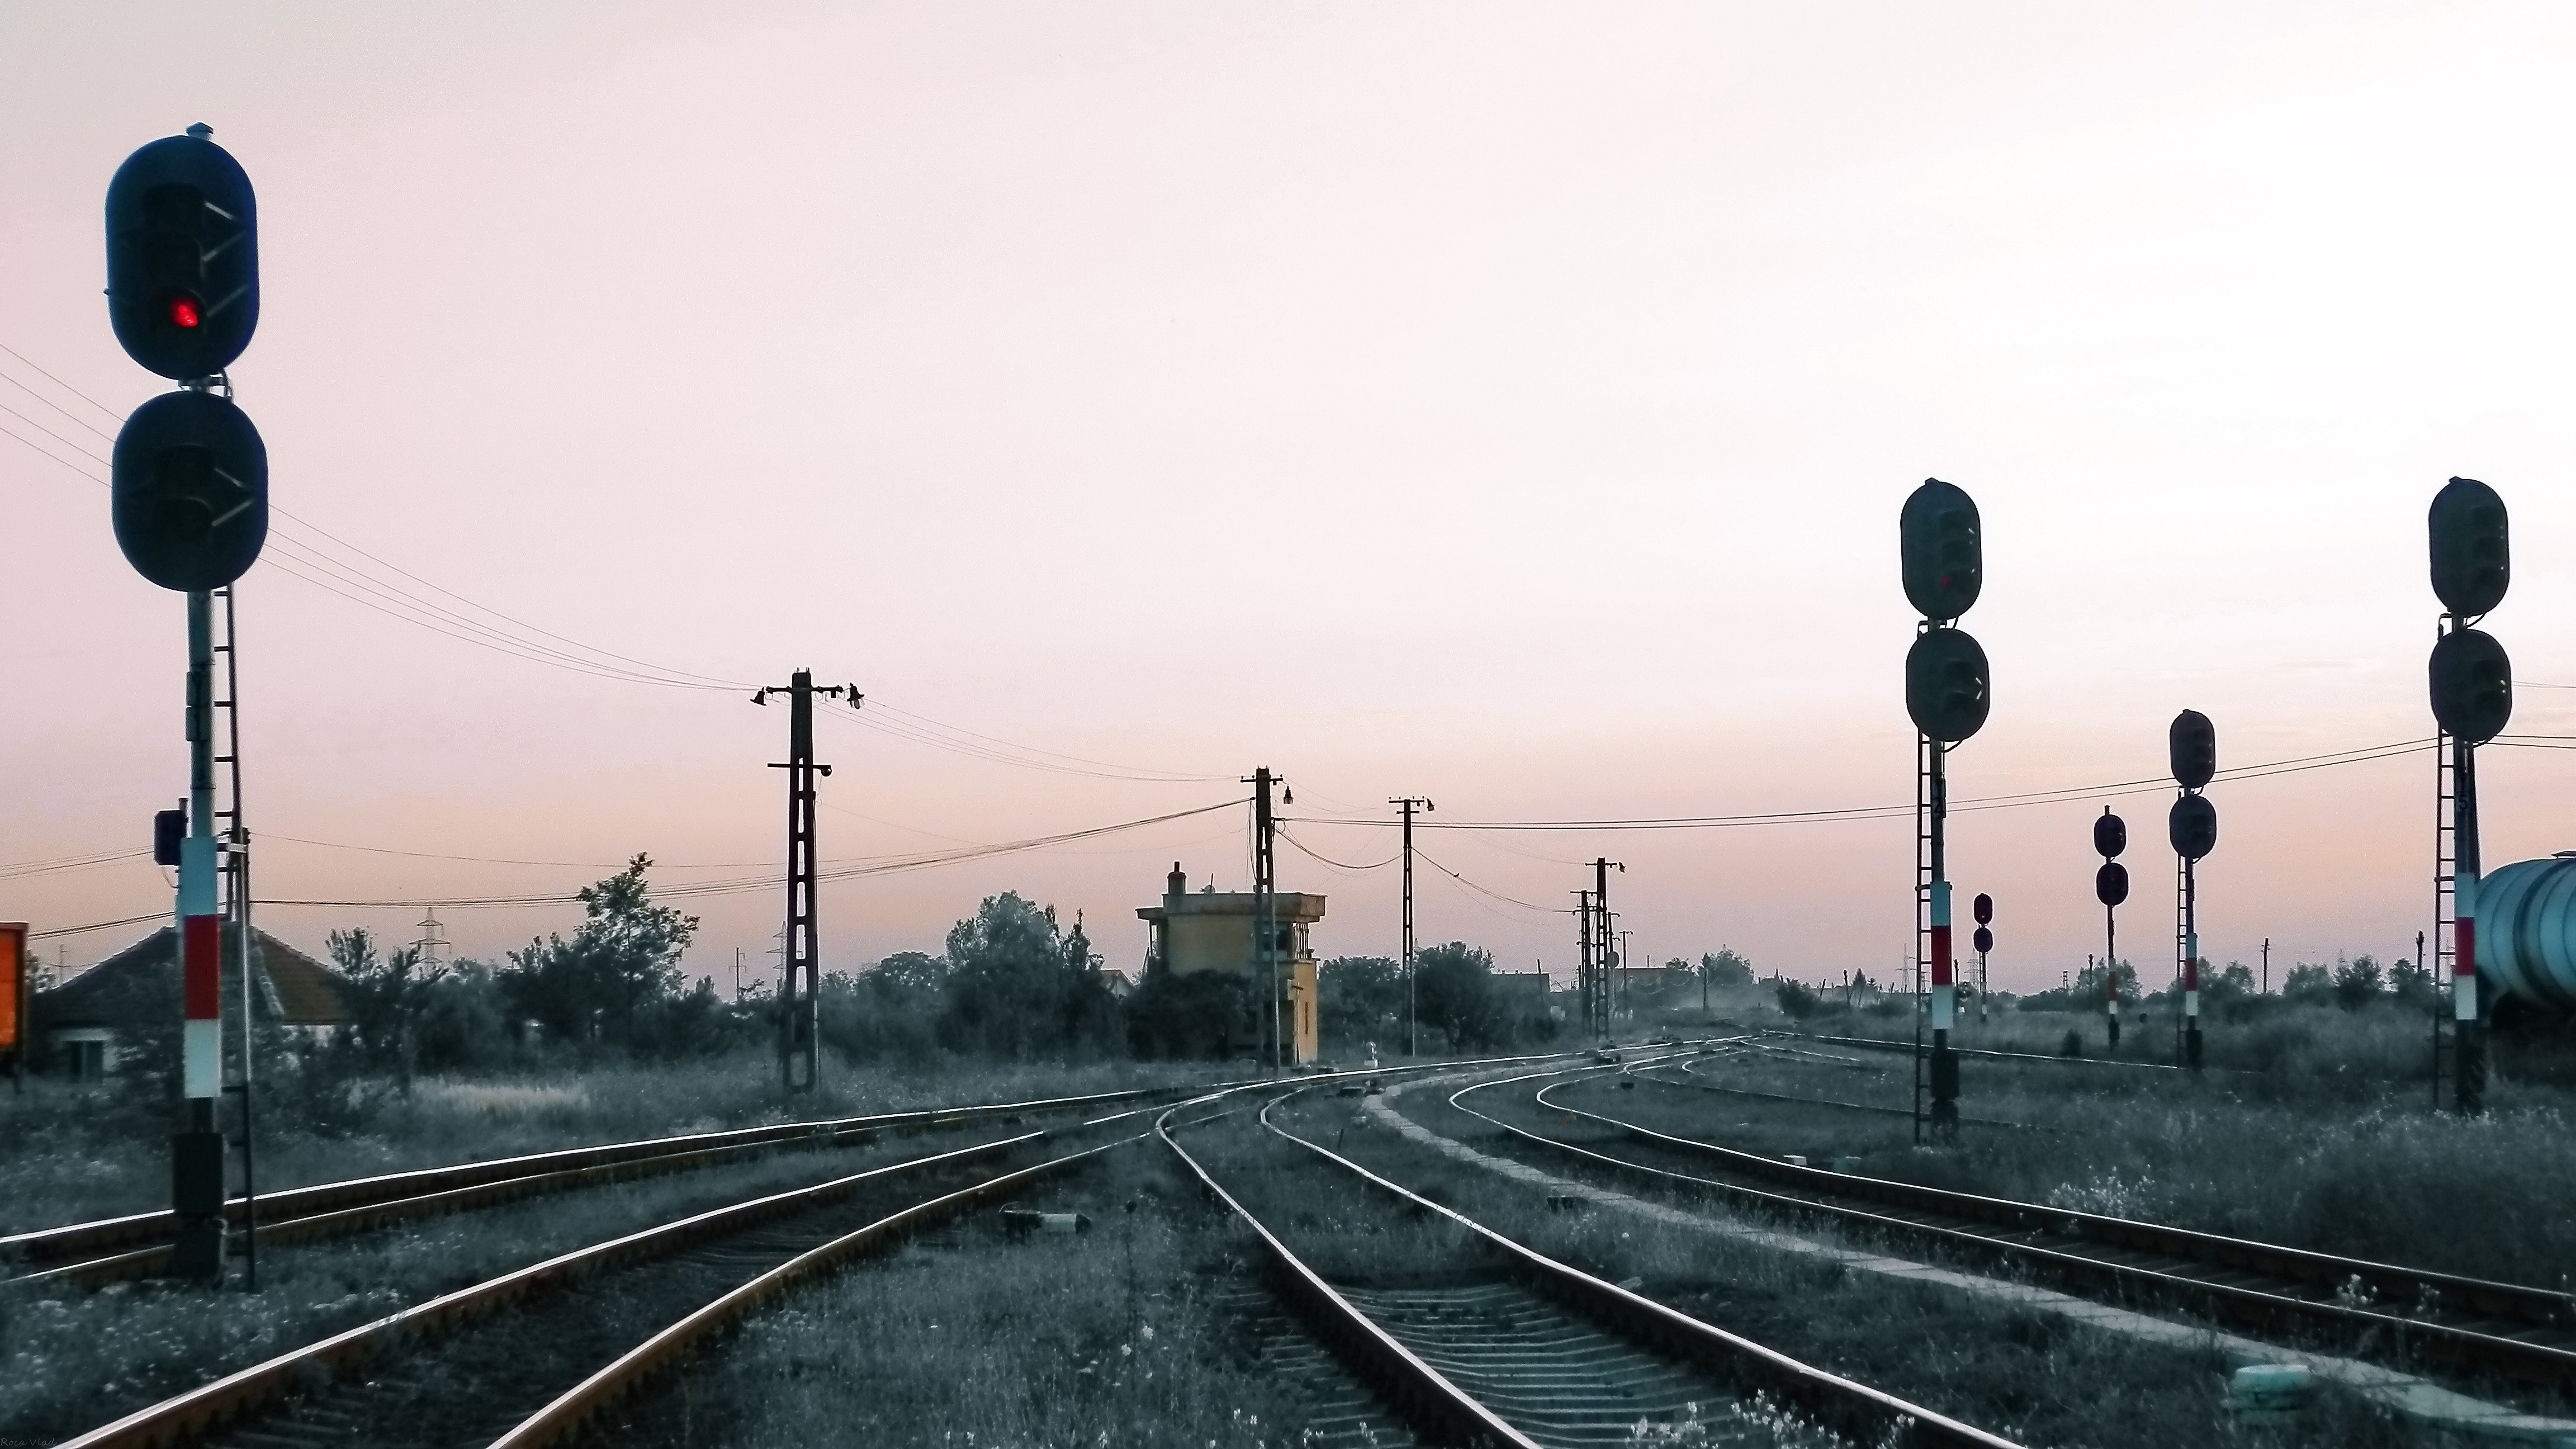 romania railroad tracks HD Wallpaper